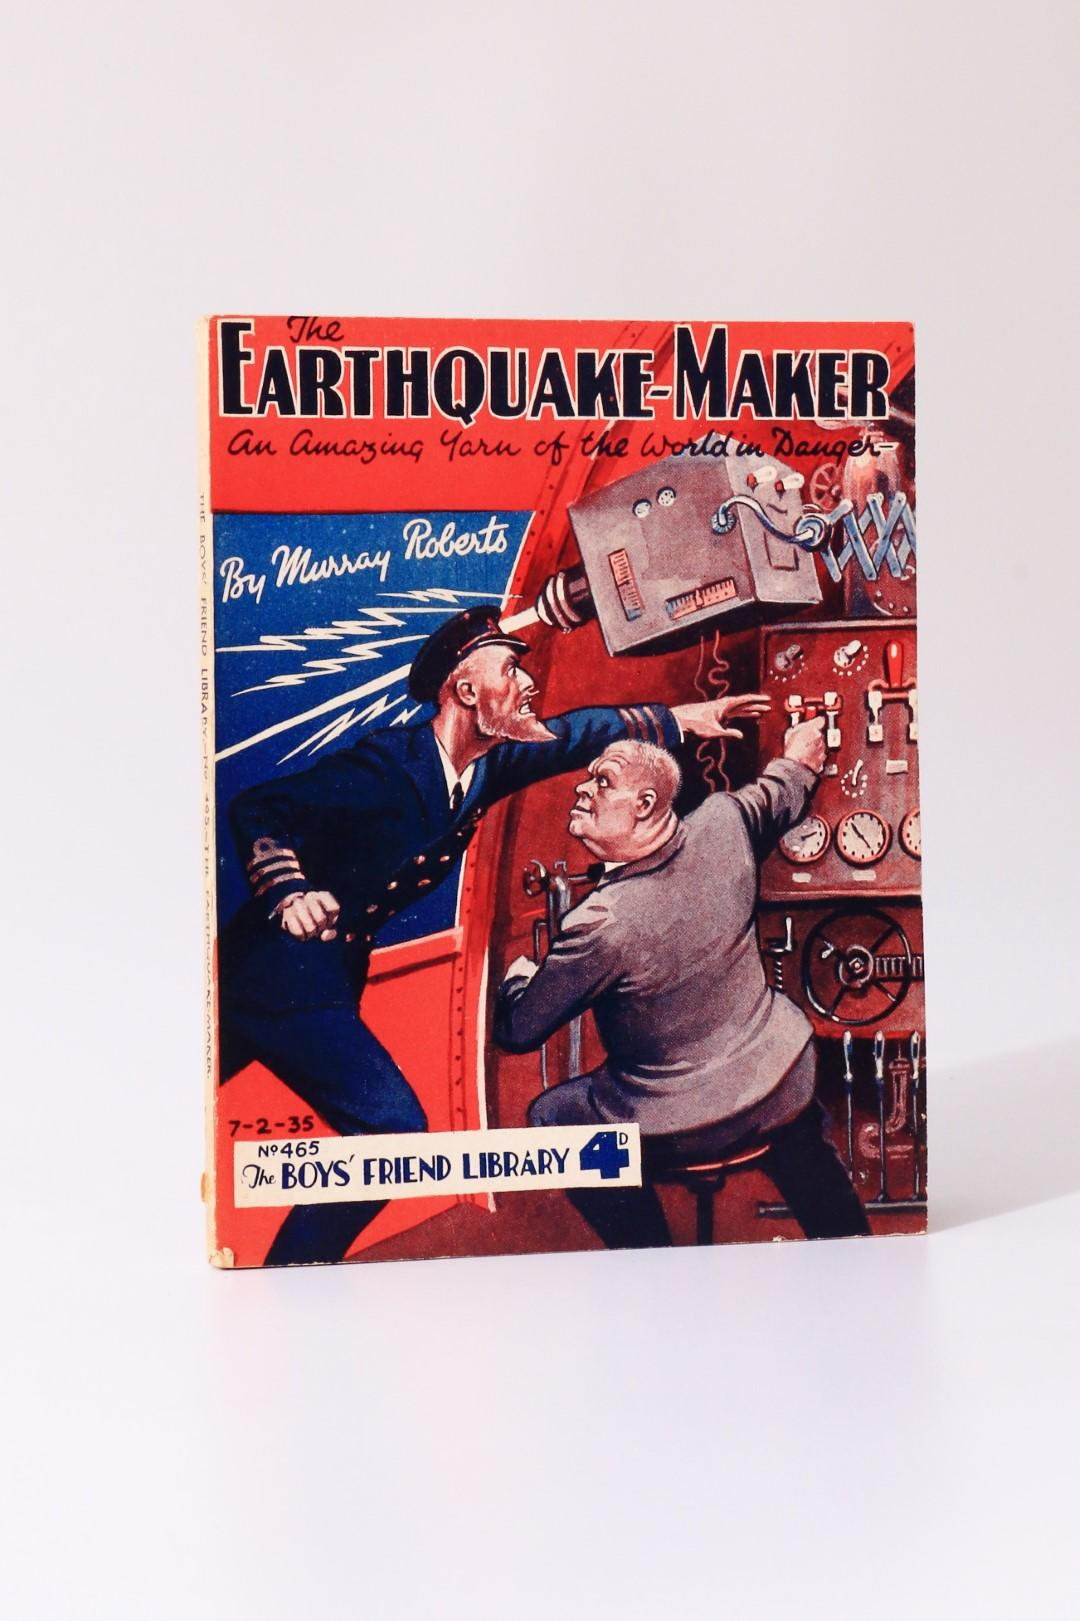 Murray Roberts - The Earthquake-Maker - The Boys' Friend Library / Amalgamated Press, 1935, First Edition.